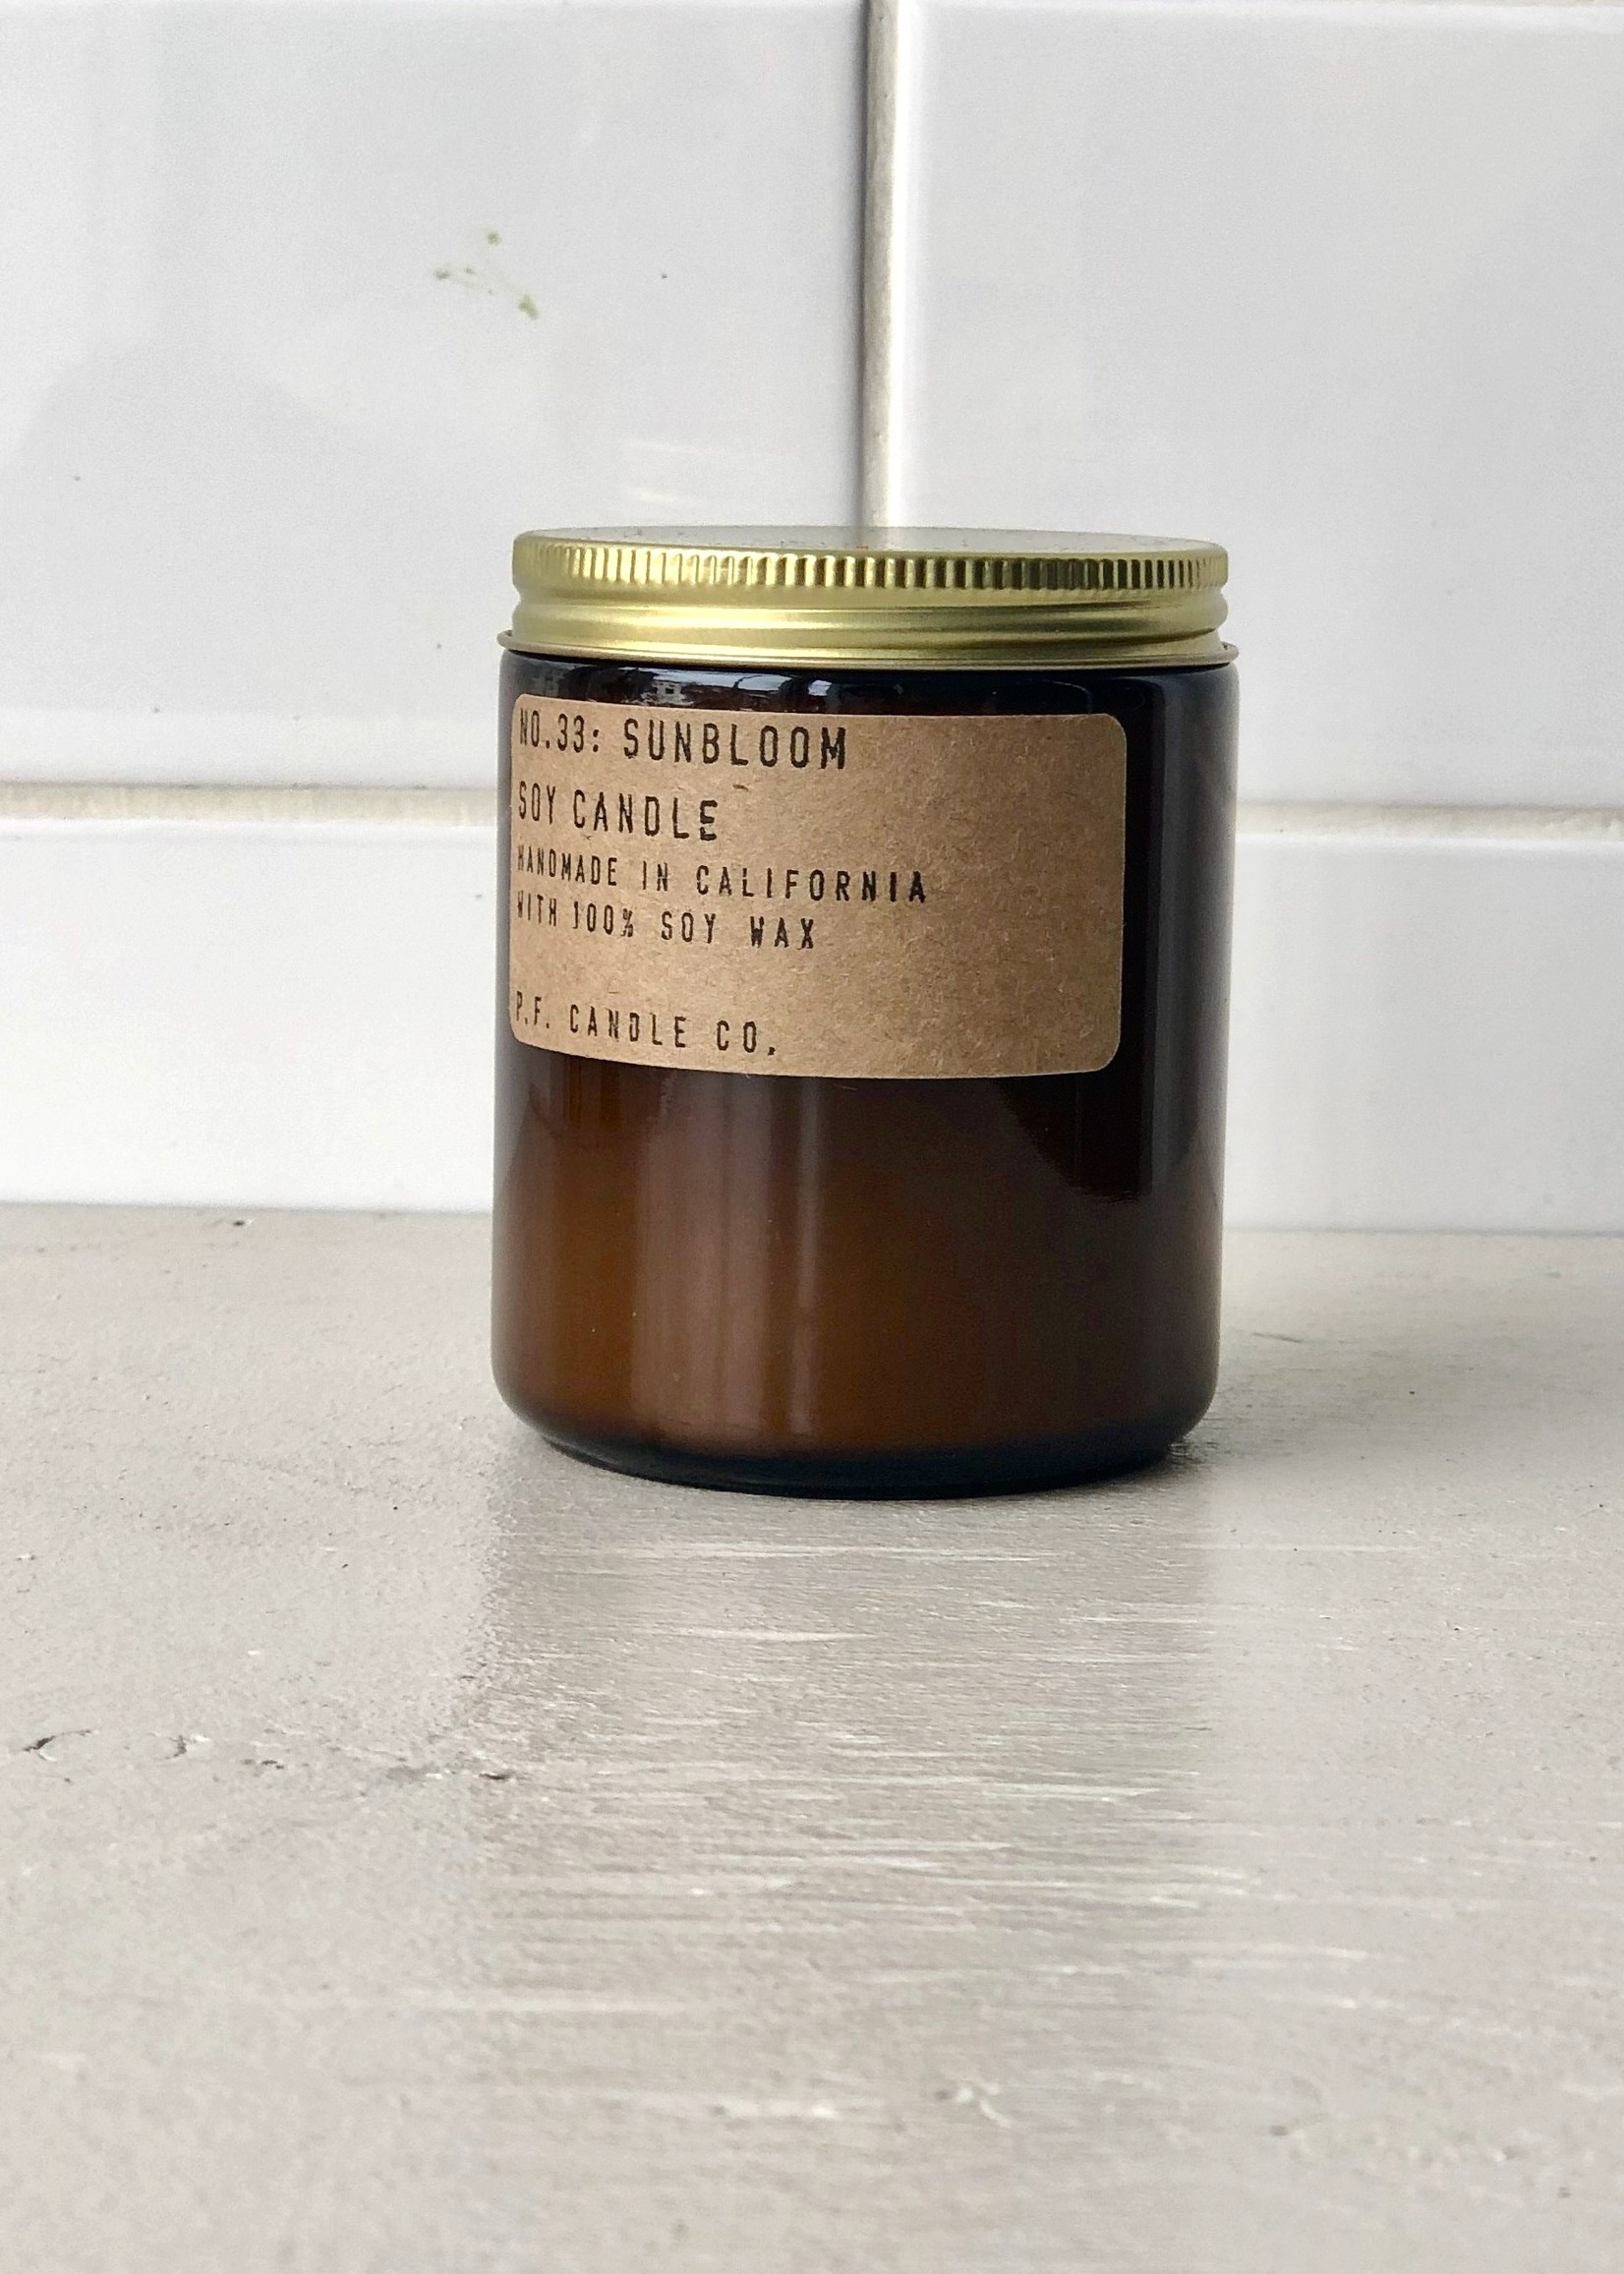 P.F. Candle Co Standard Soy Candle